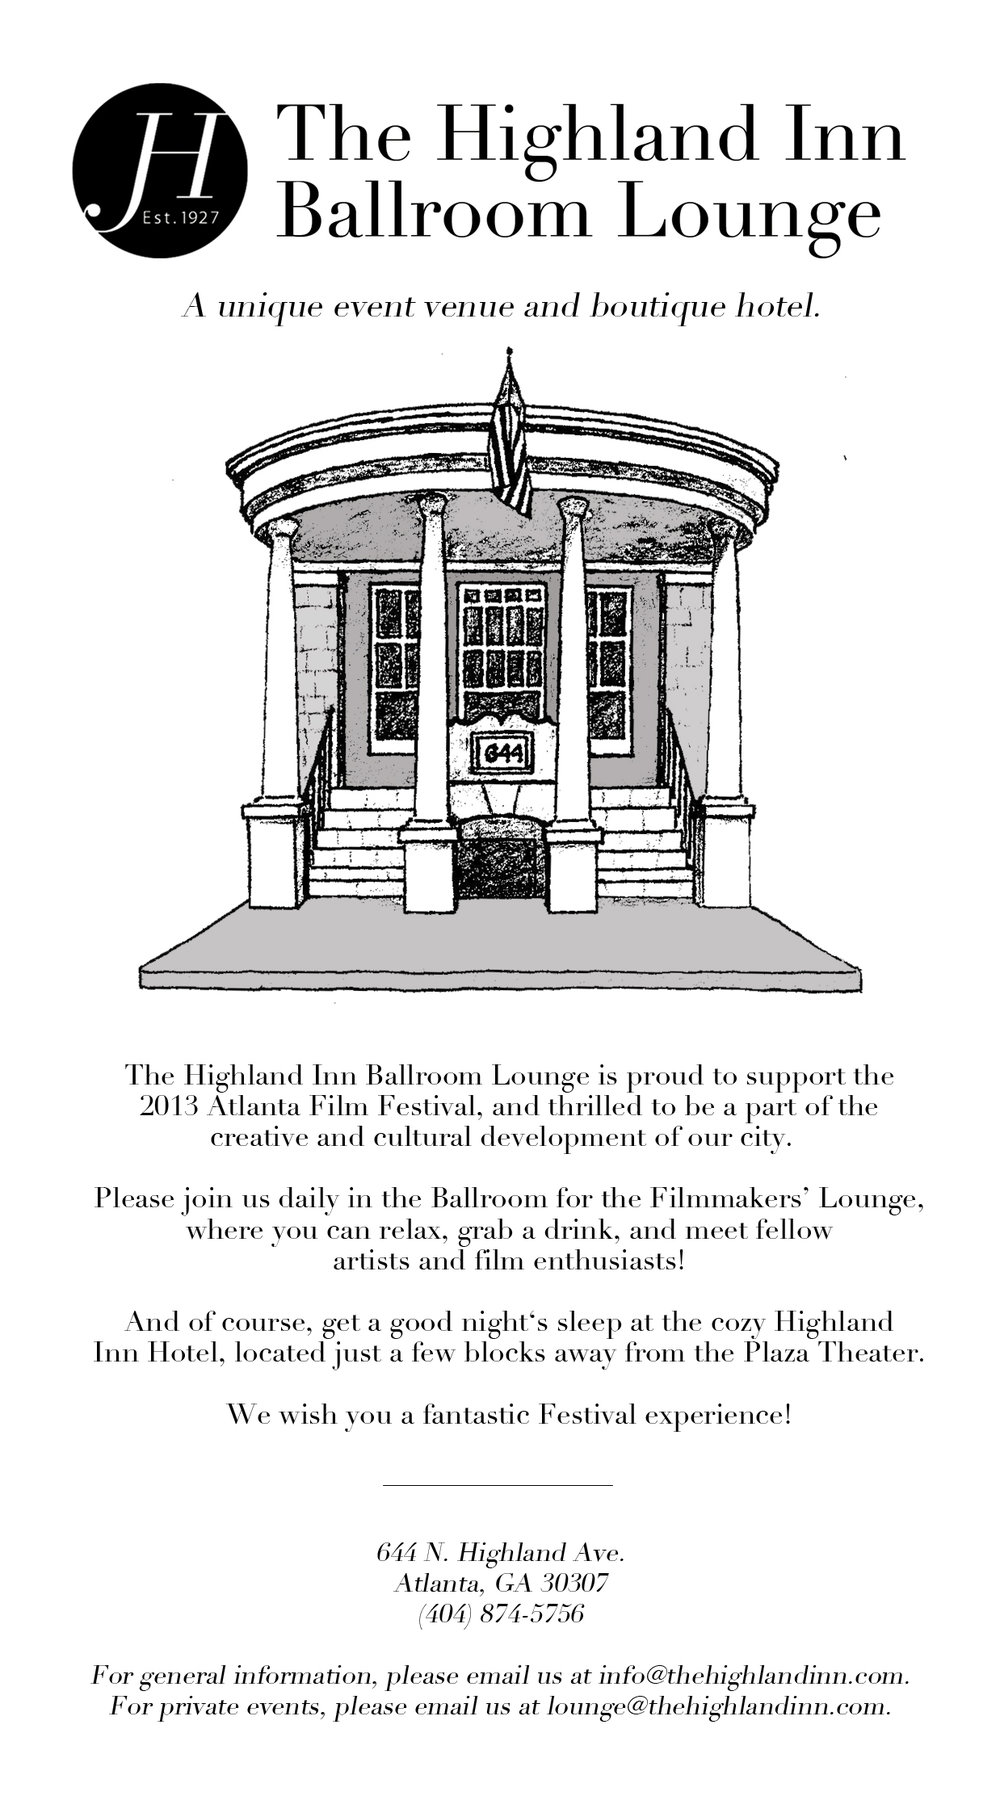 Full-page advertisement for The Highland Inn Ballroom Lounge featured in the Atlanta Film Festival Annual Program, 2013.